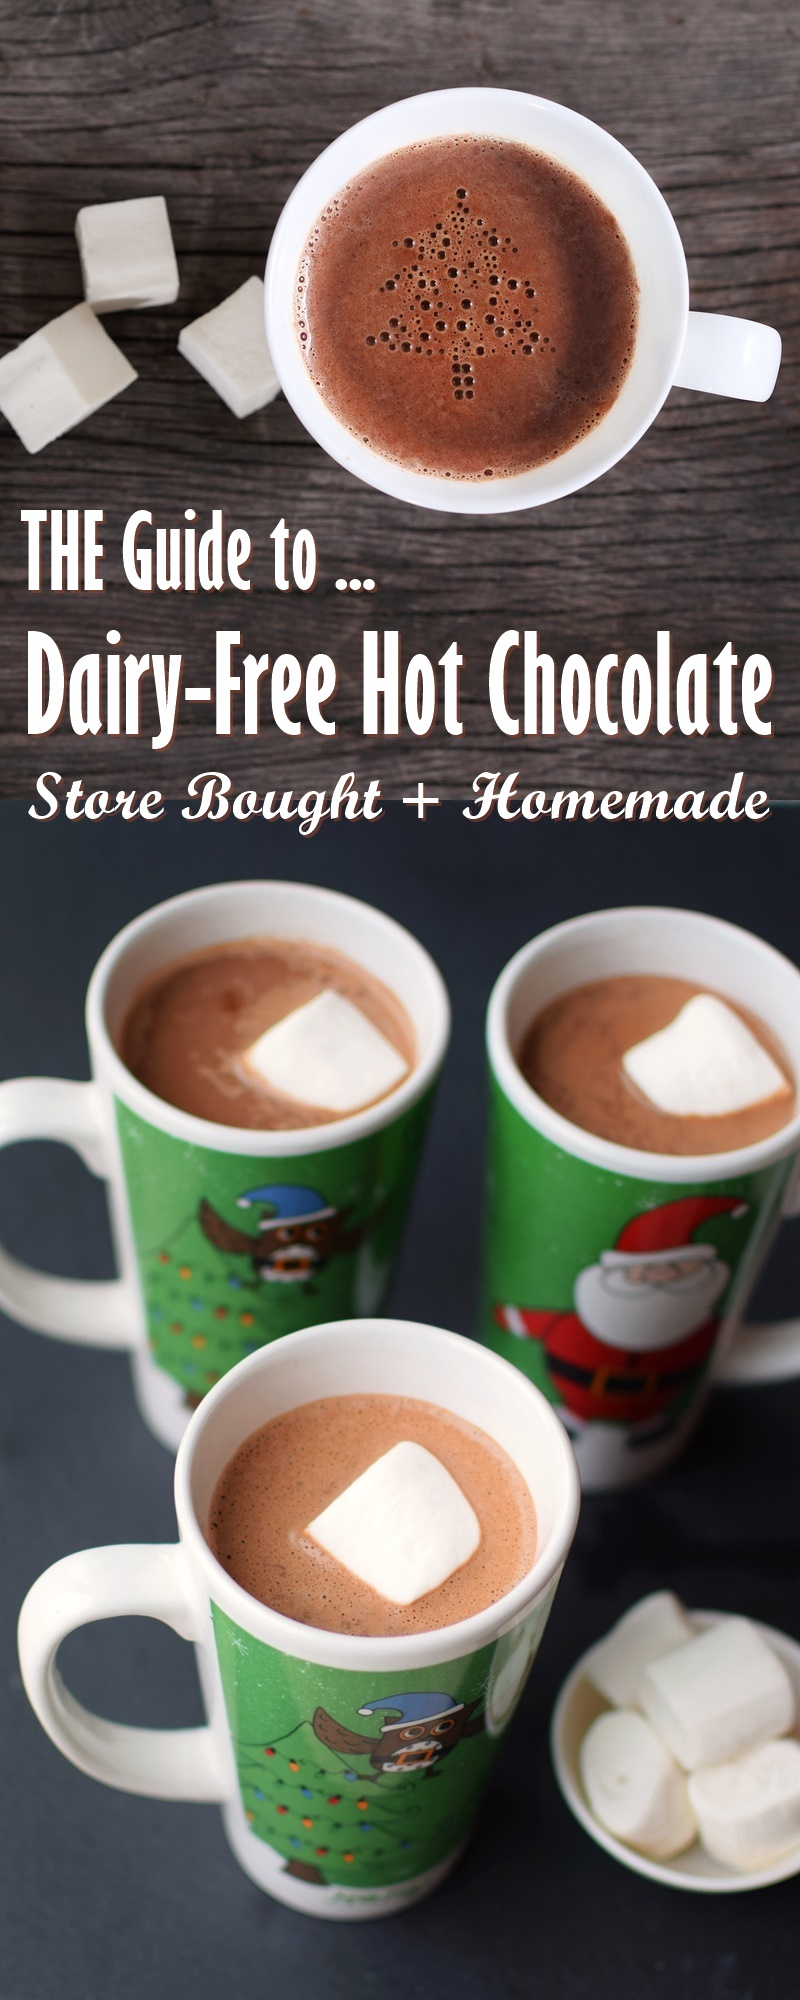 Dairy-Free Hot Chocolate Guide with Tons of Brands, Recipes & Tips